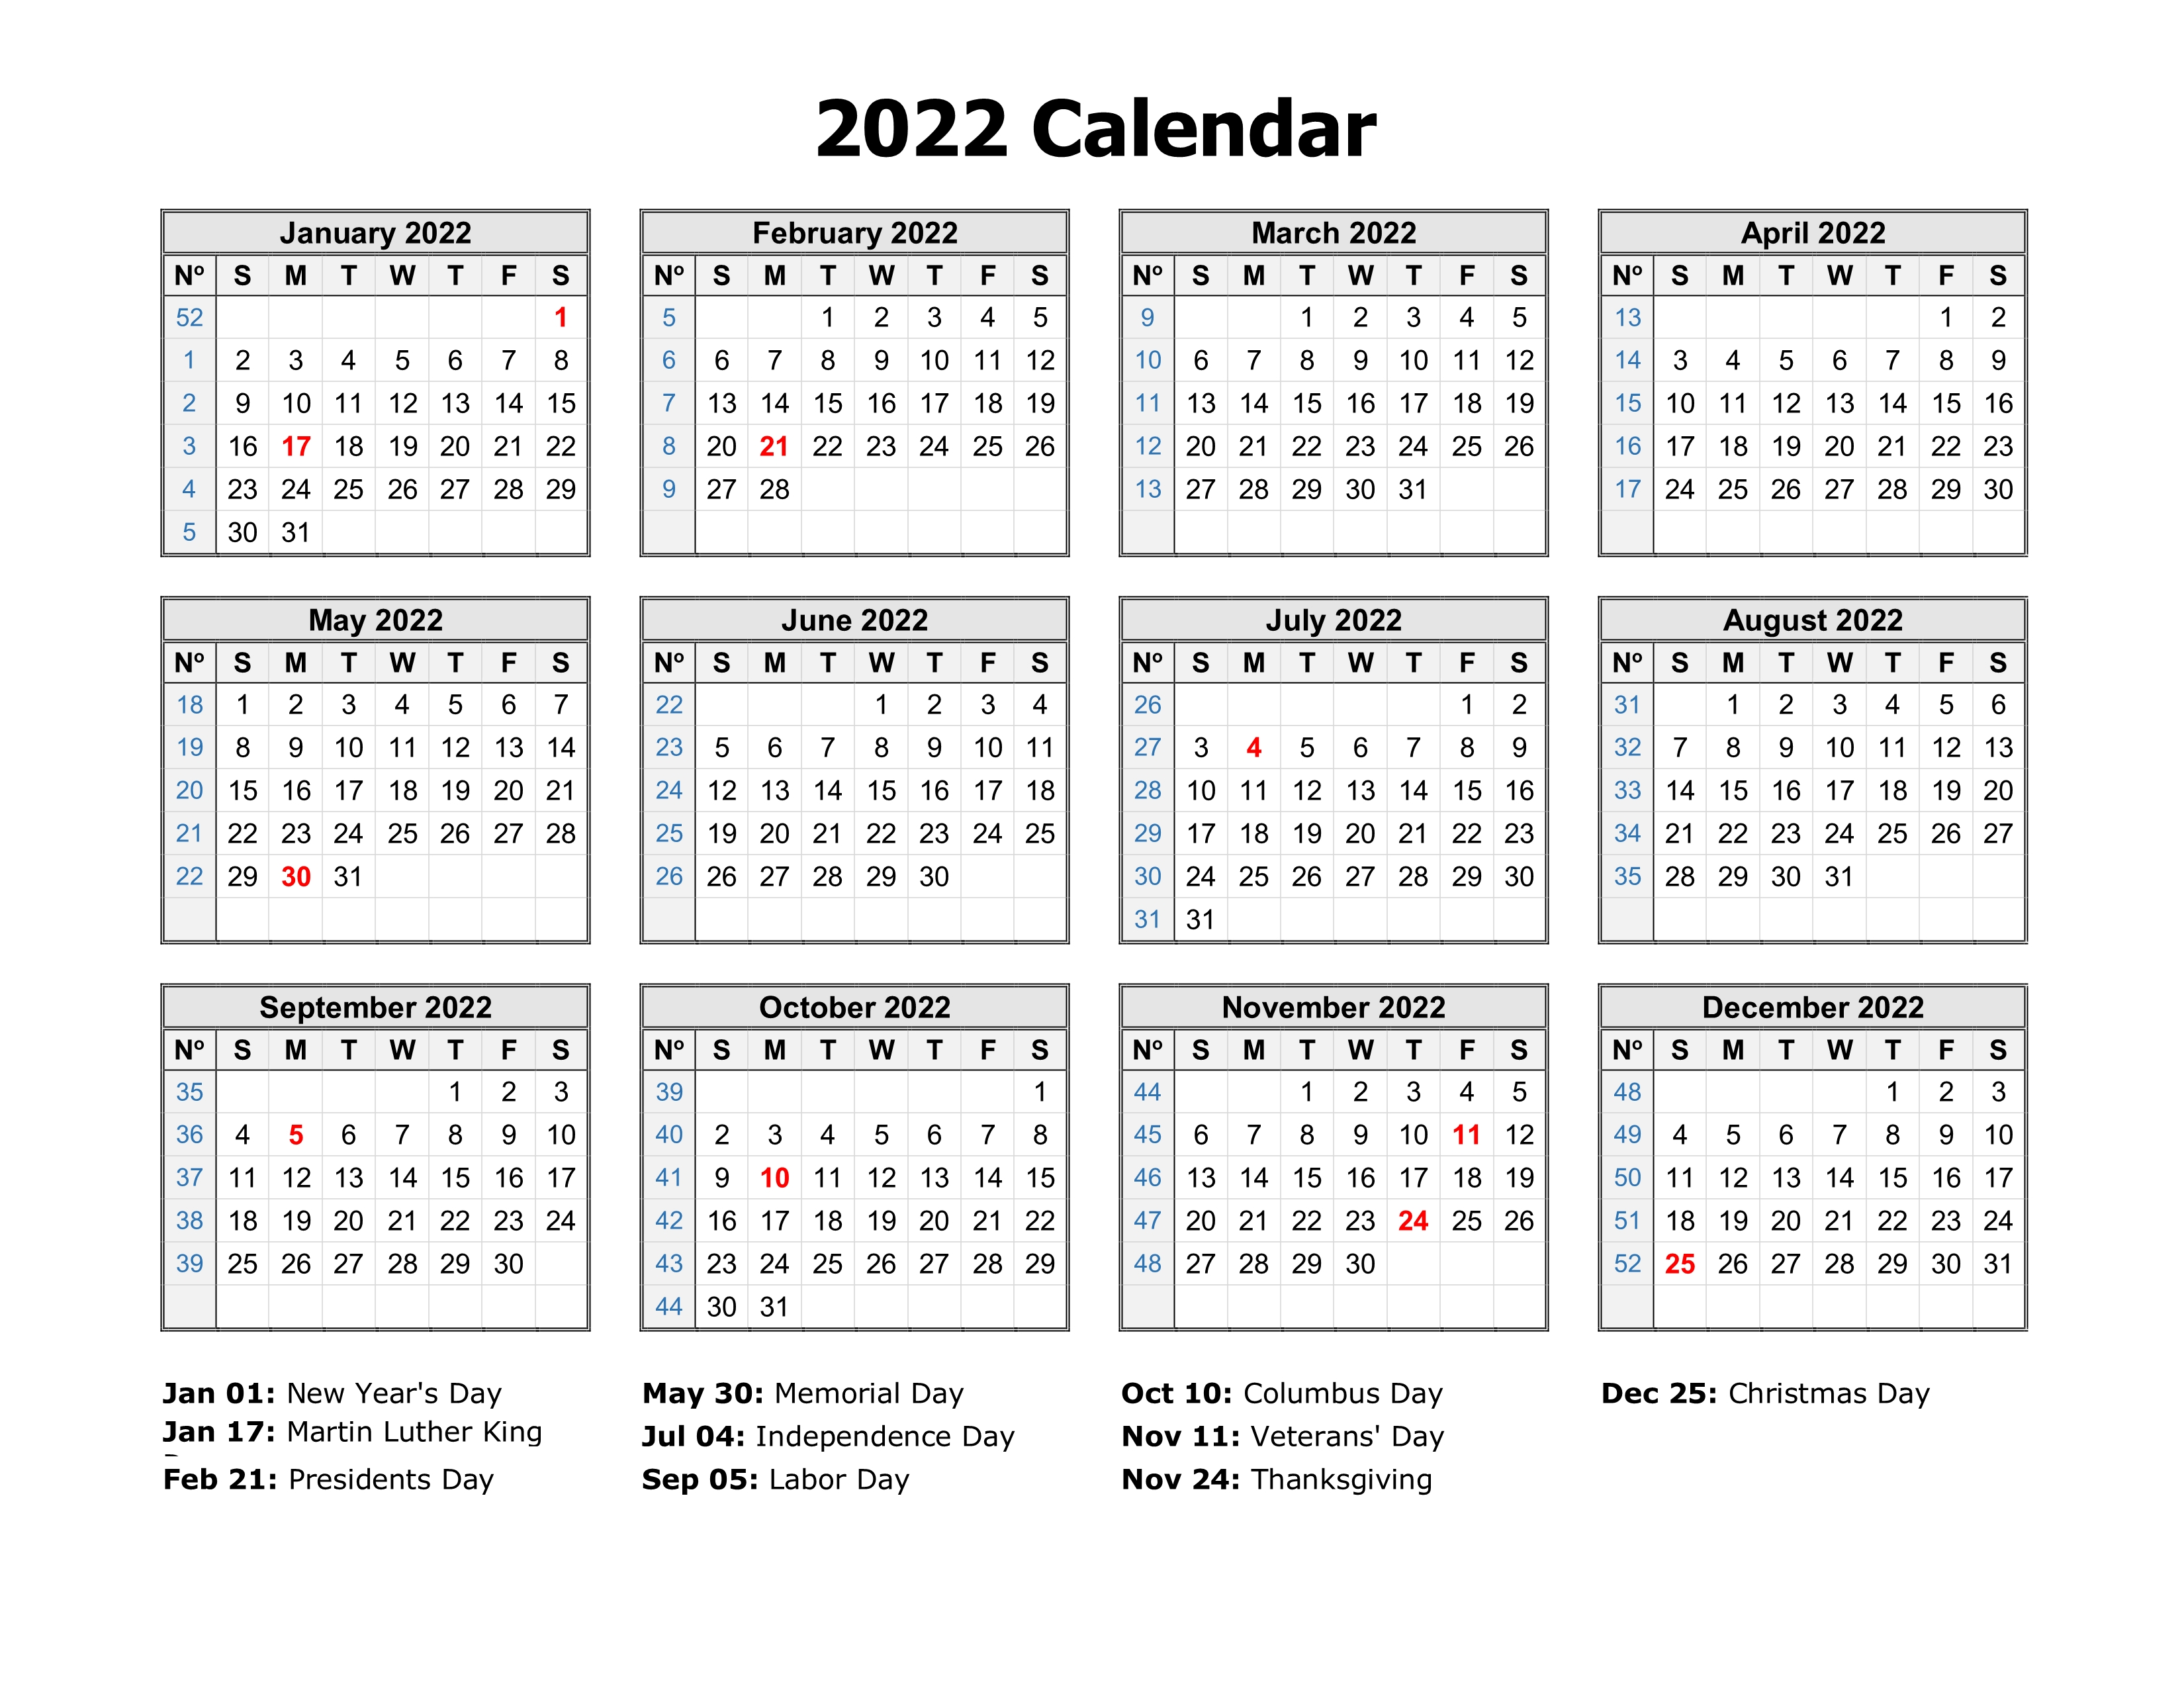 2022 One Page Calendar.Free Download Printable Calendar 2022 In One Page Clean Design